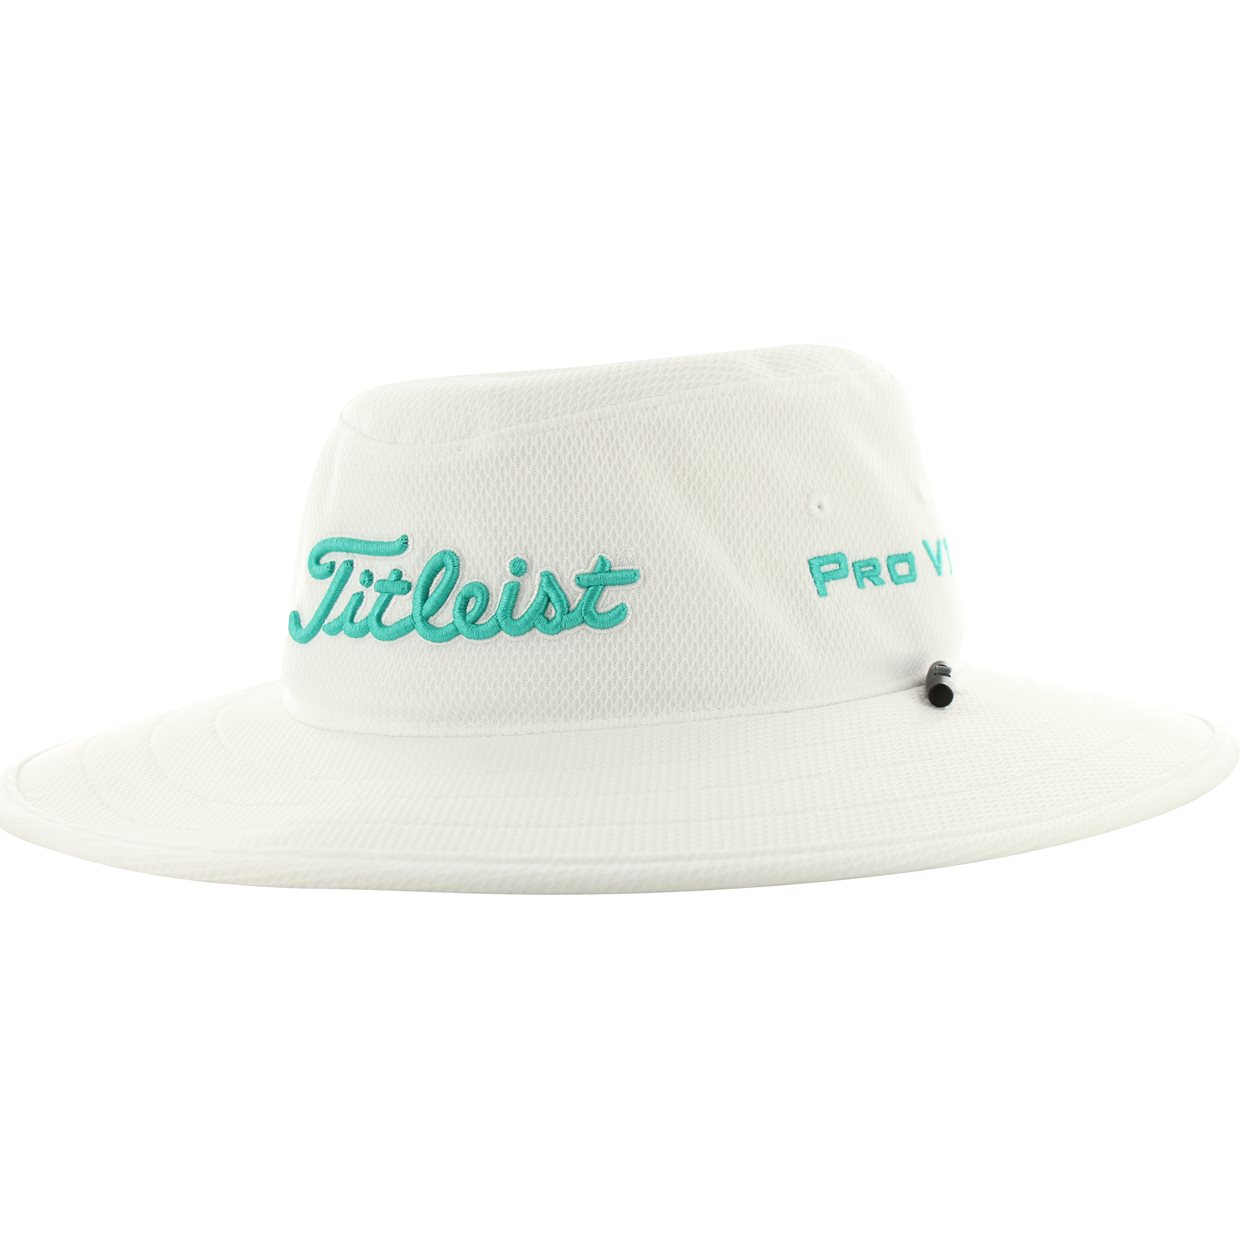 Titleist Tour Aussie Collection Headwear Apparel at GlobalGolf.com 425f559caac